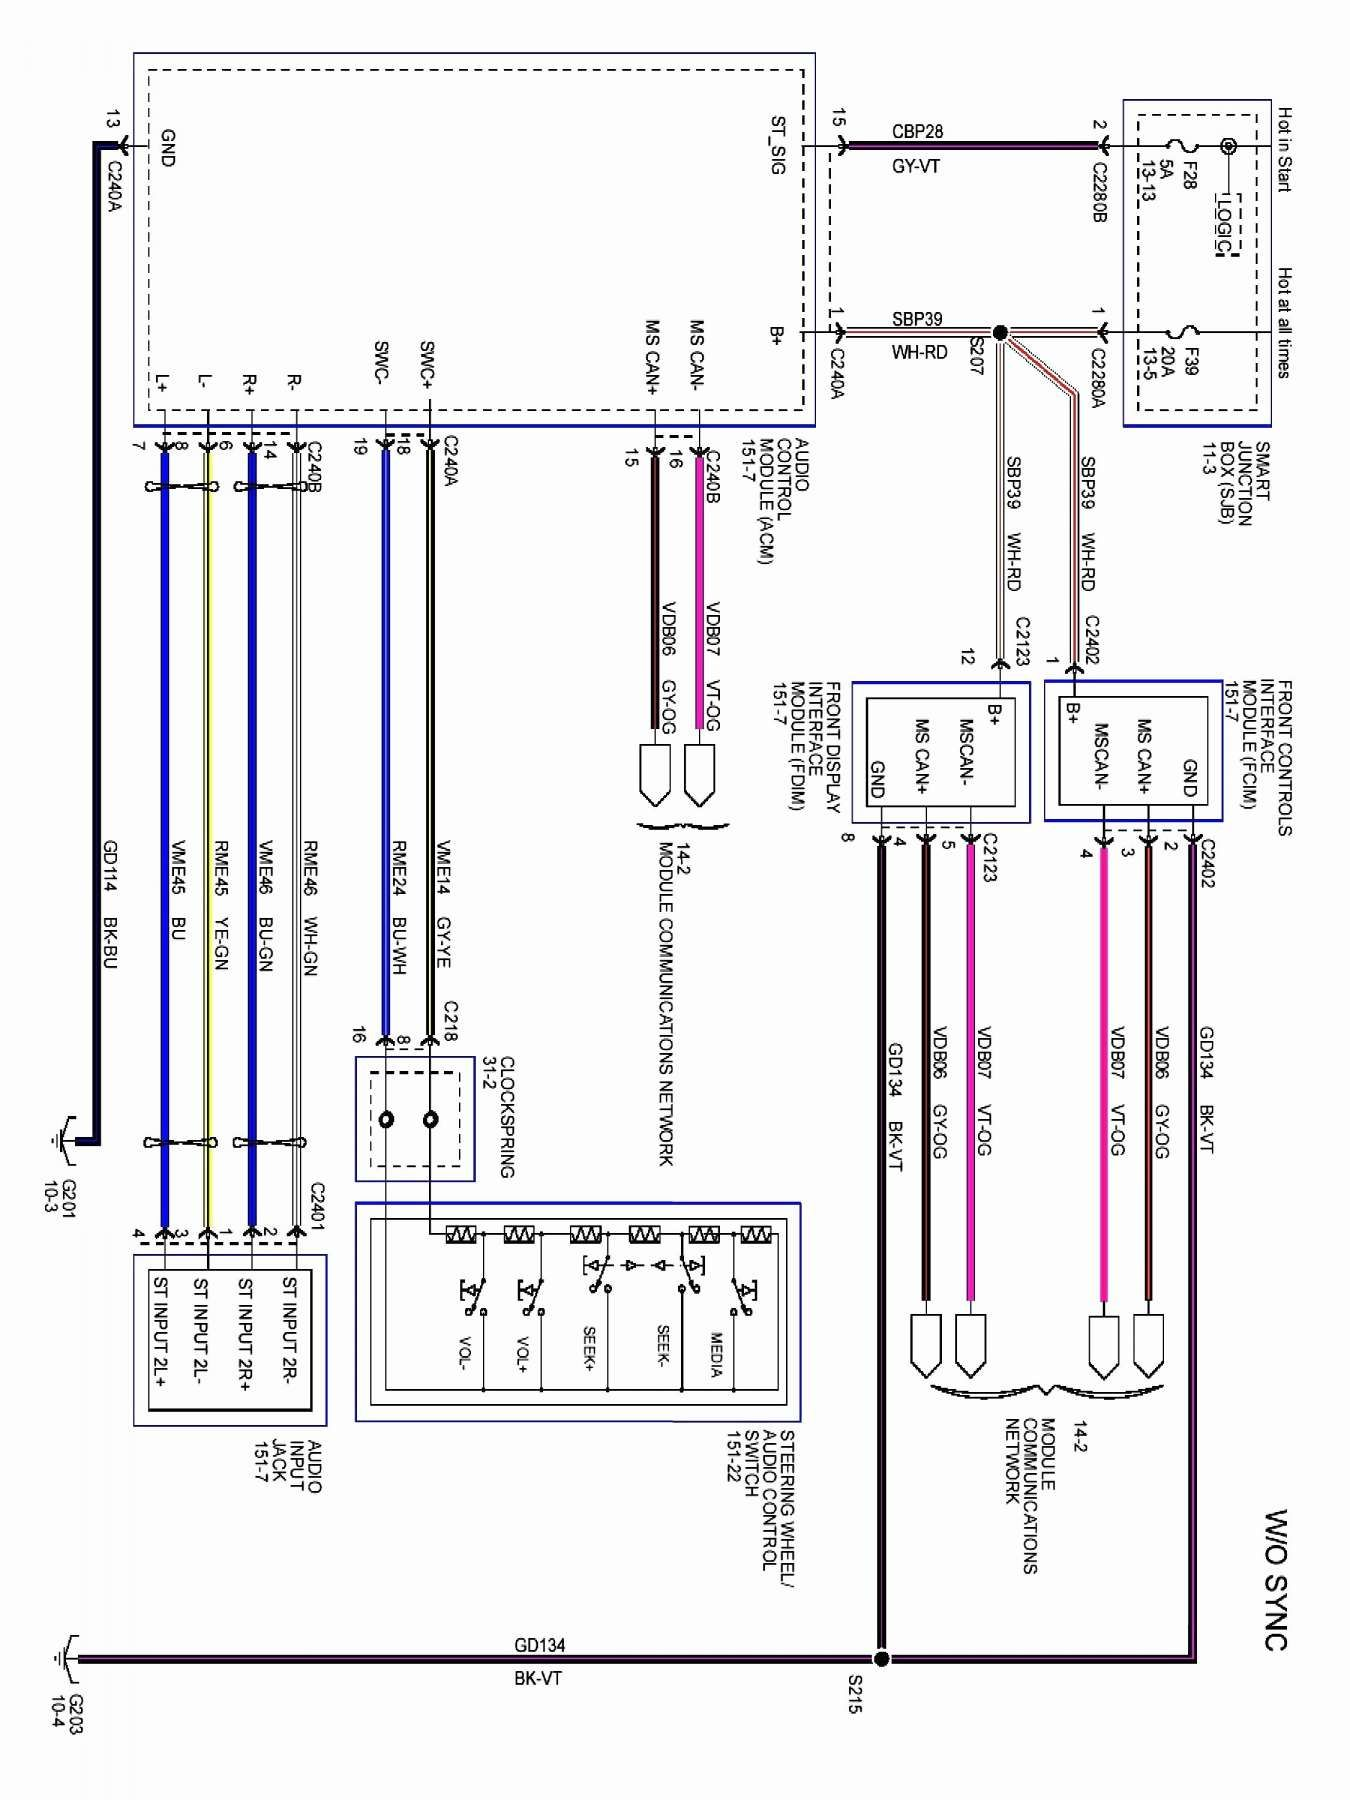 16 Jvc Stereo Wiring Diagram Car Car Diagram Wiringg Net Electrical Wiring Diagram Diagram Circuit Diagram